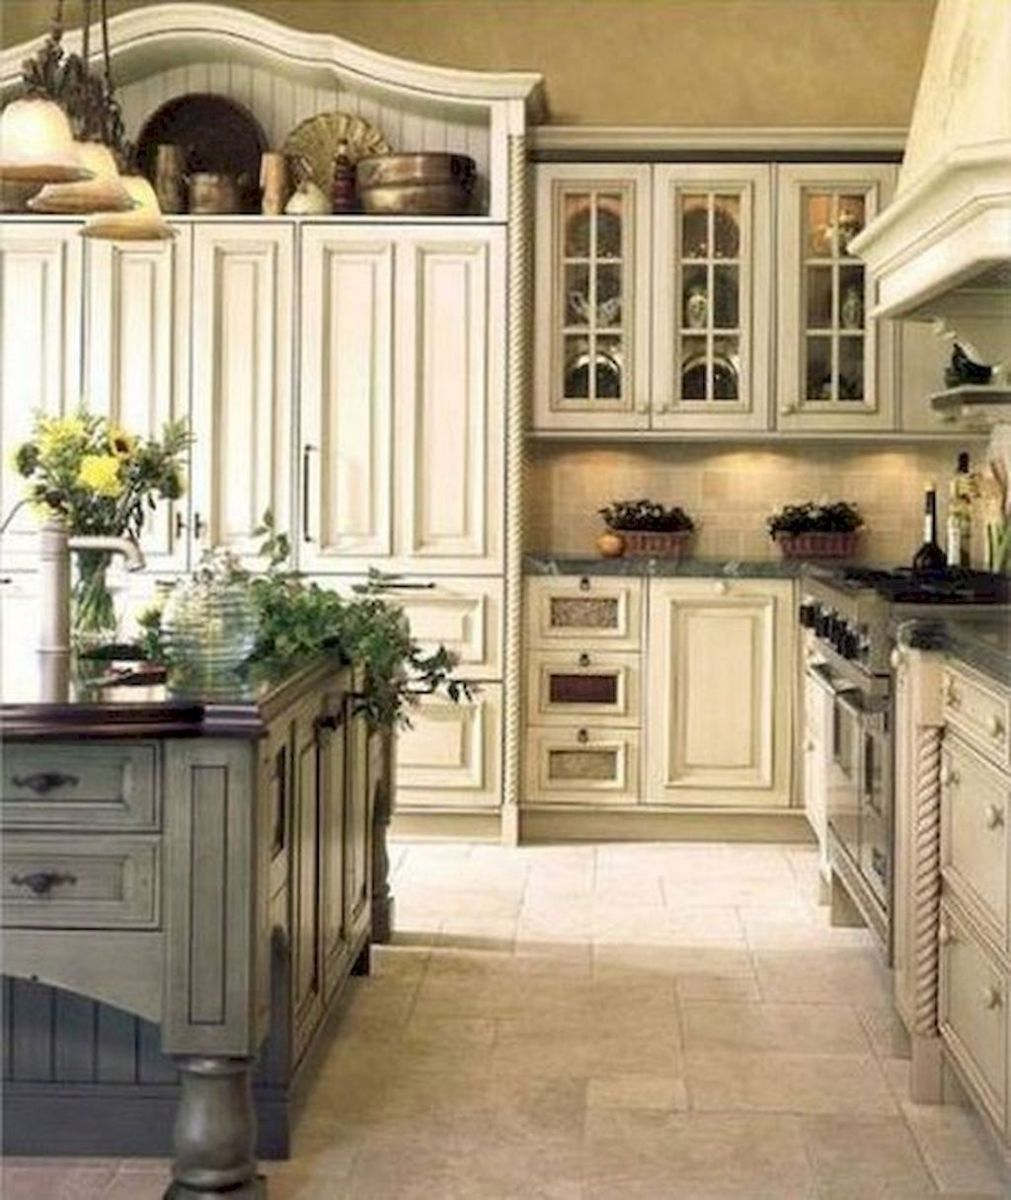 Incredible Kitchen Remodeling Ideas: Incredible French Country Kitchen Design Ideas 03